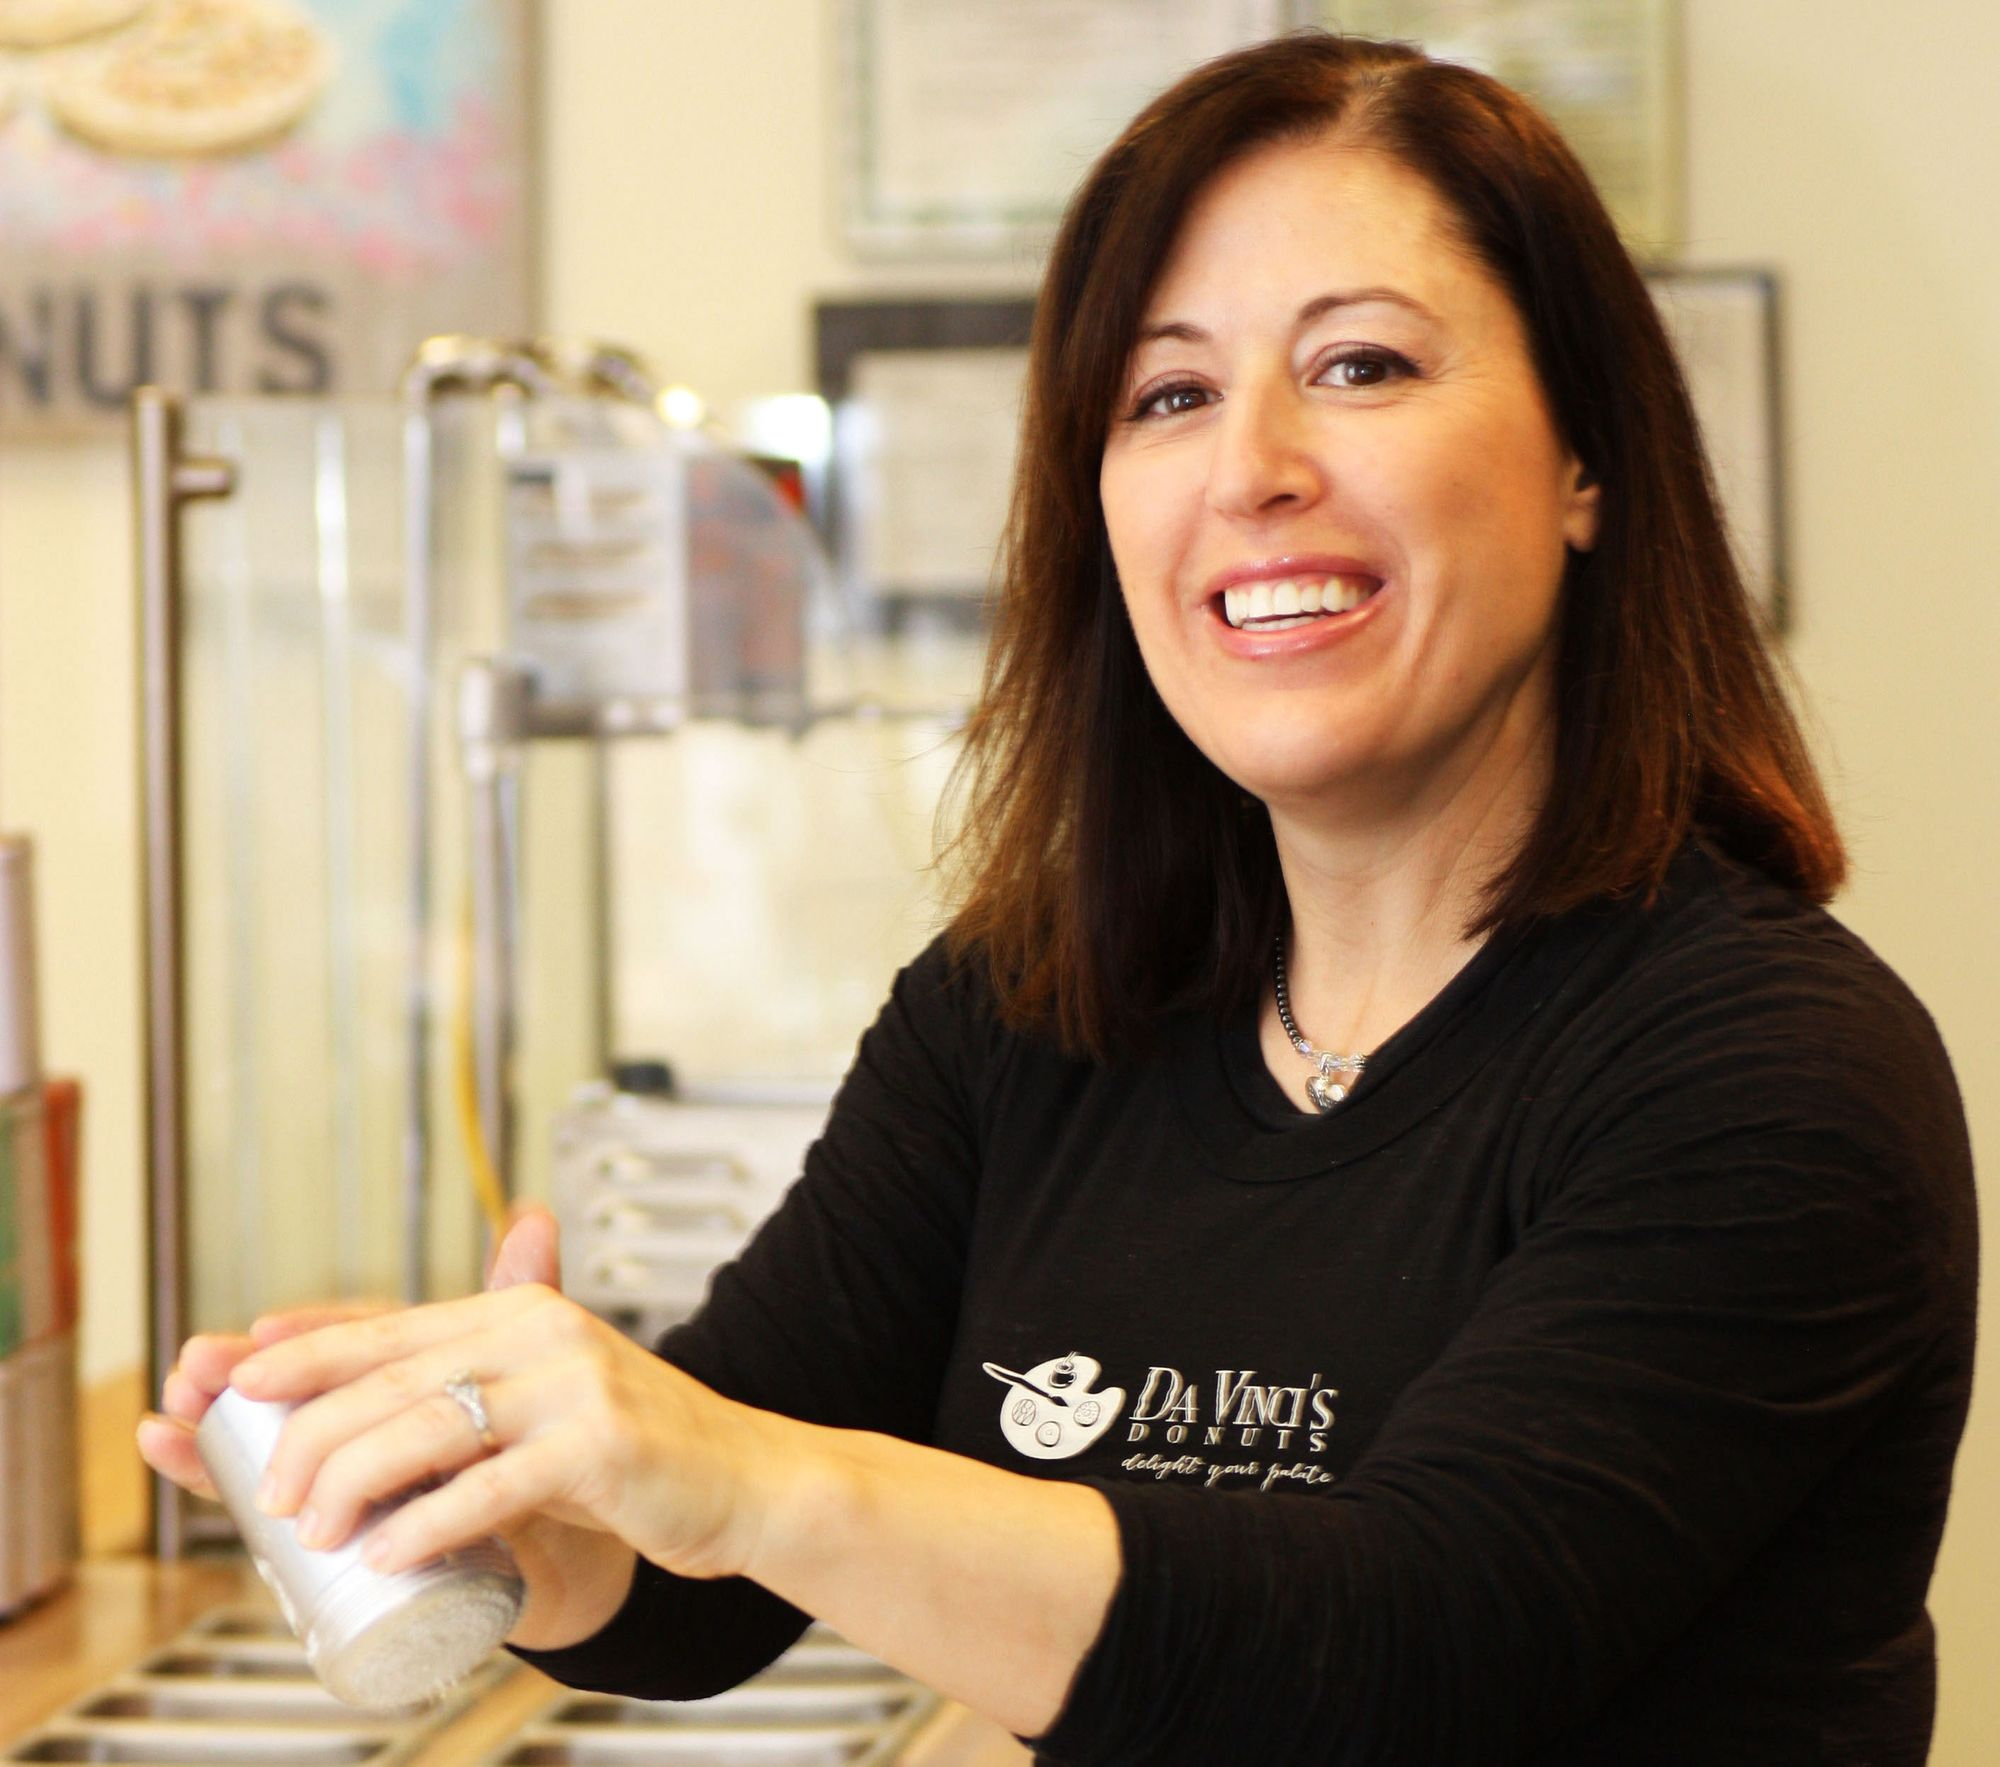 How we grew our small donut shop into 4 locations - DaVinci's Donuts